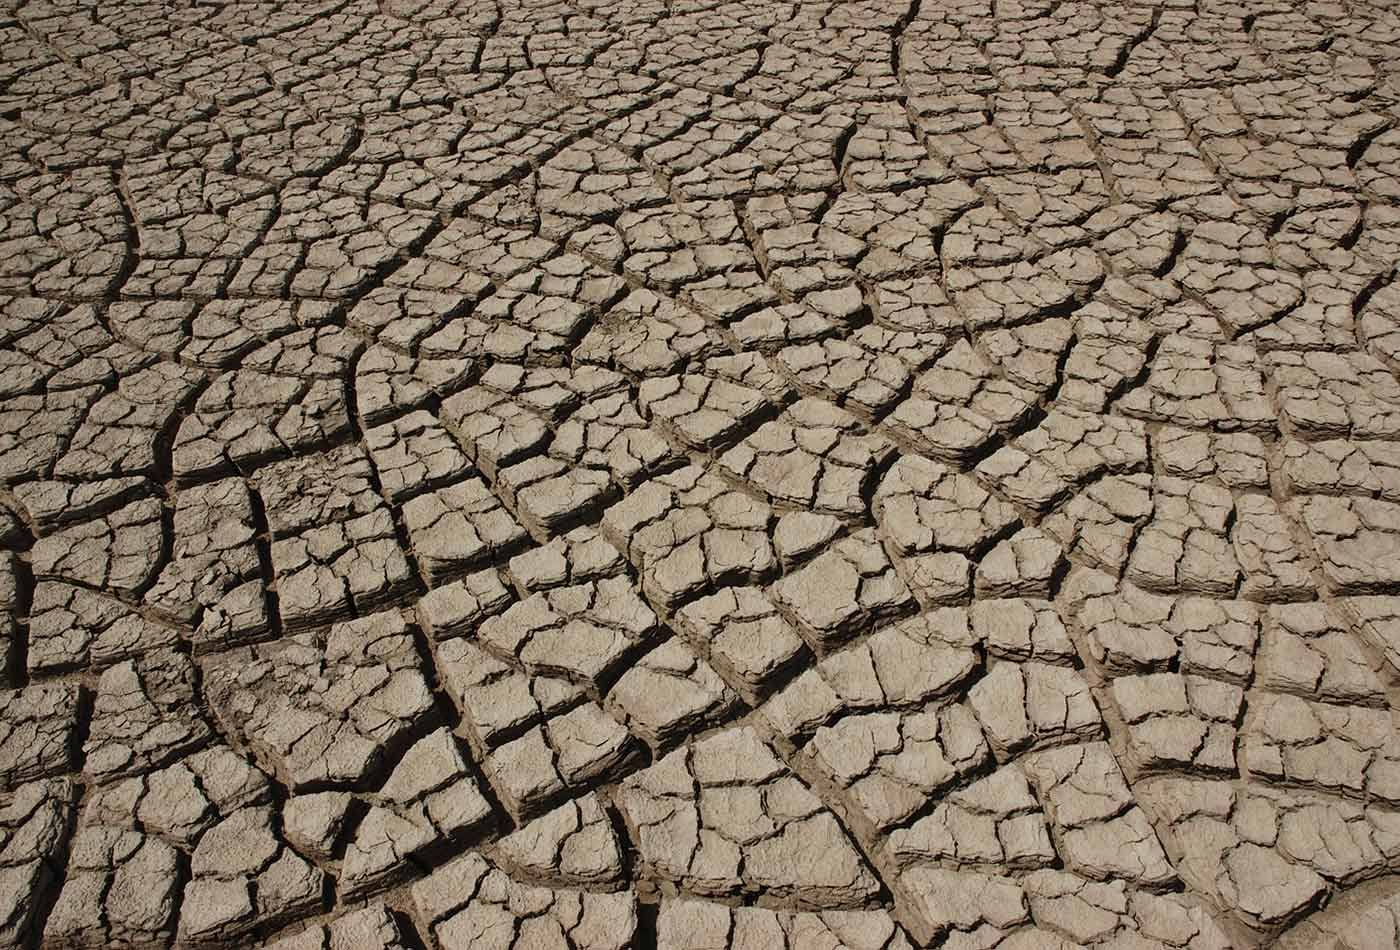 Cracked earth in the Rann of Kutch.